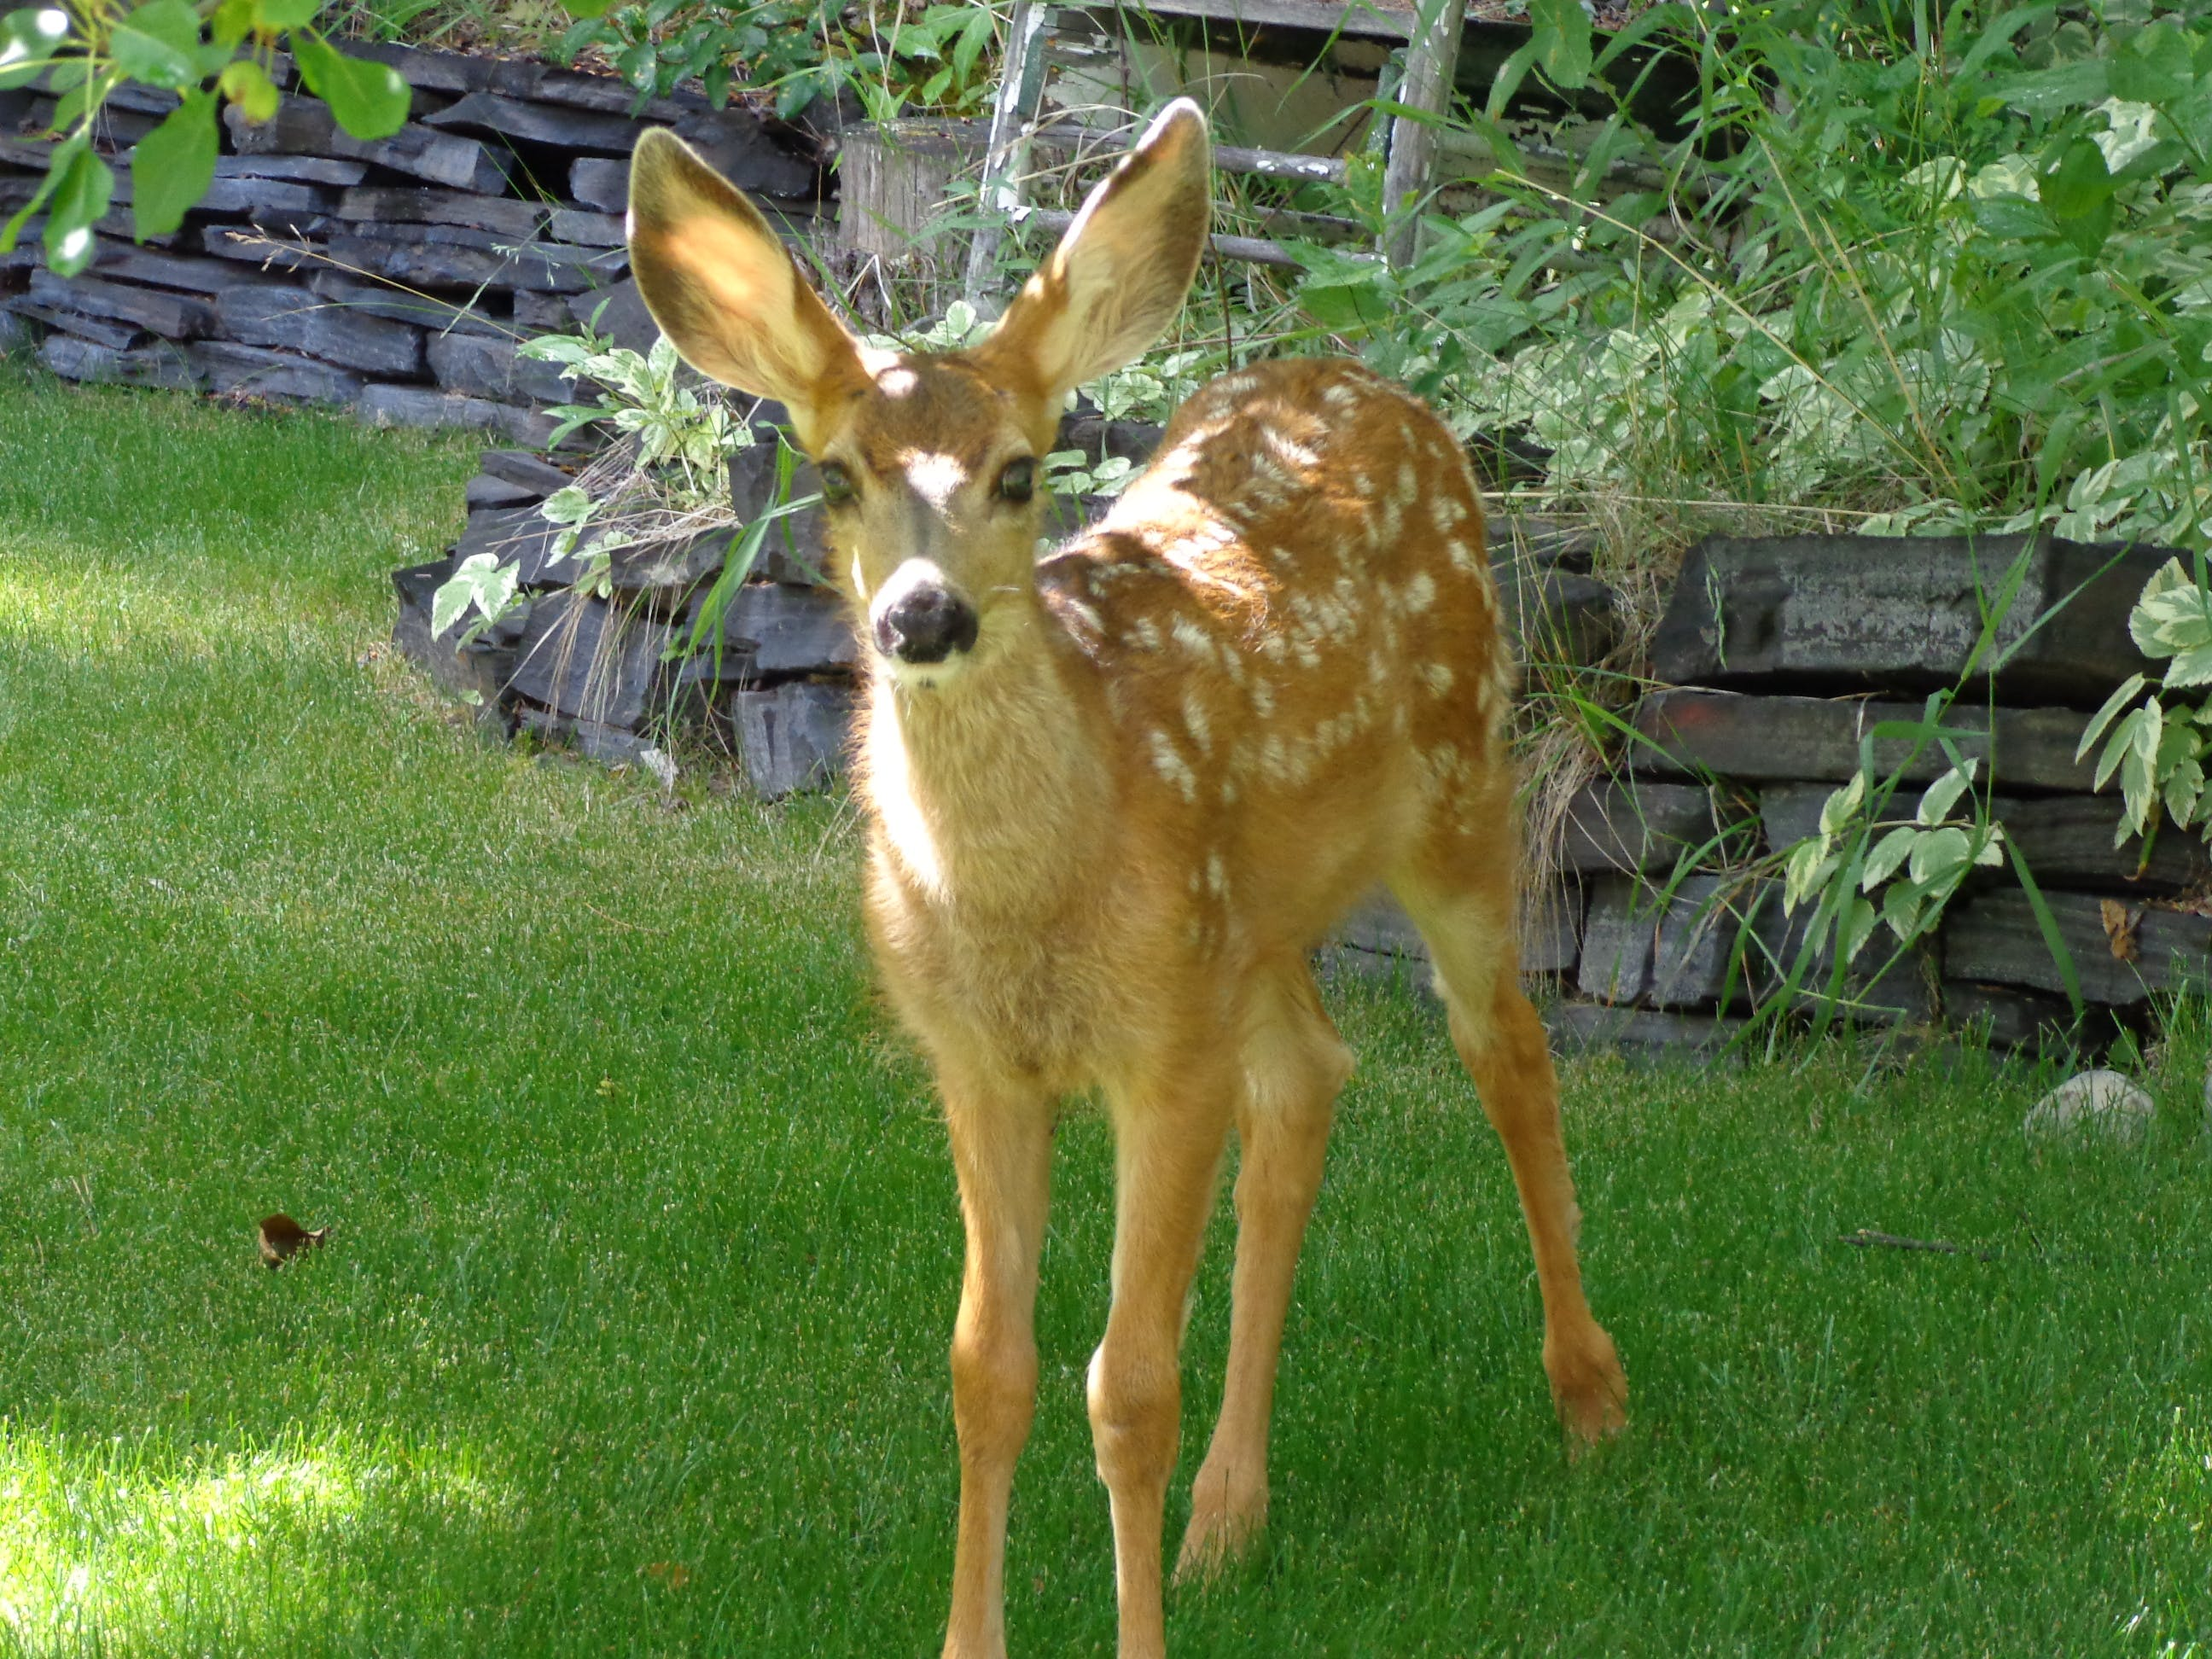 Bambi, our little deer, was born at in the forest at Ballyrock